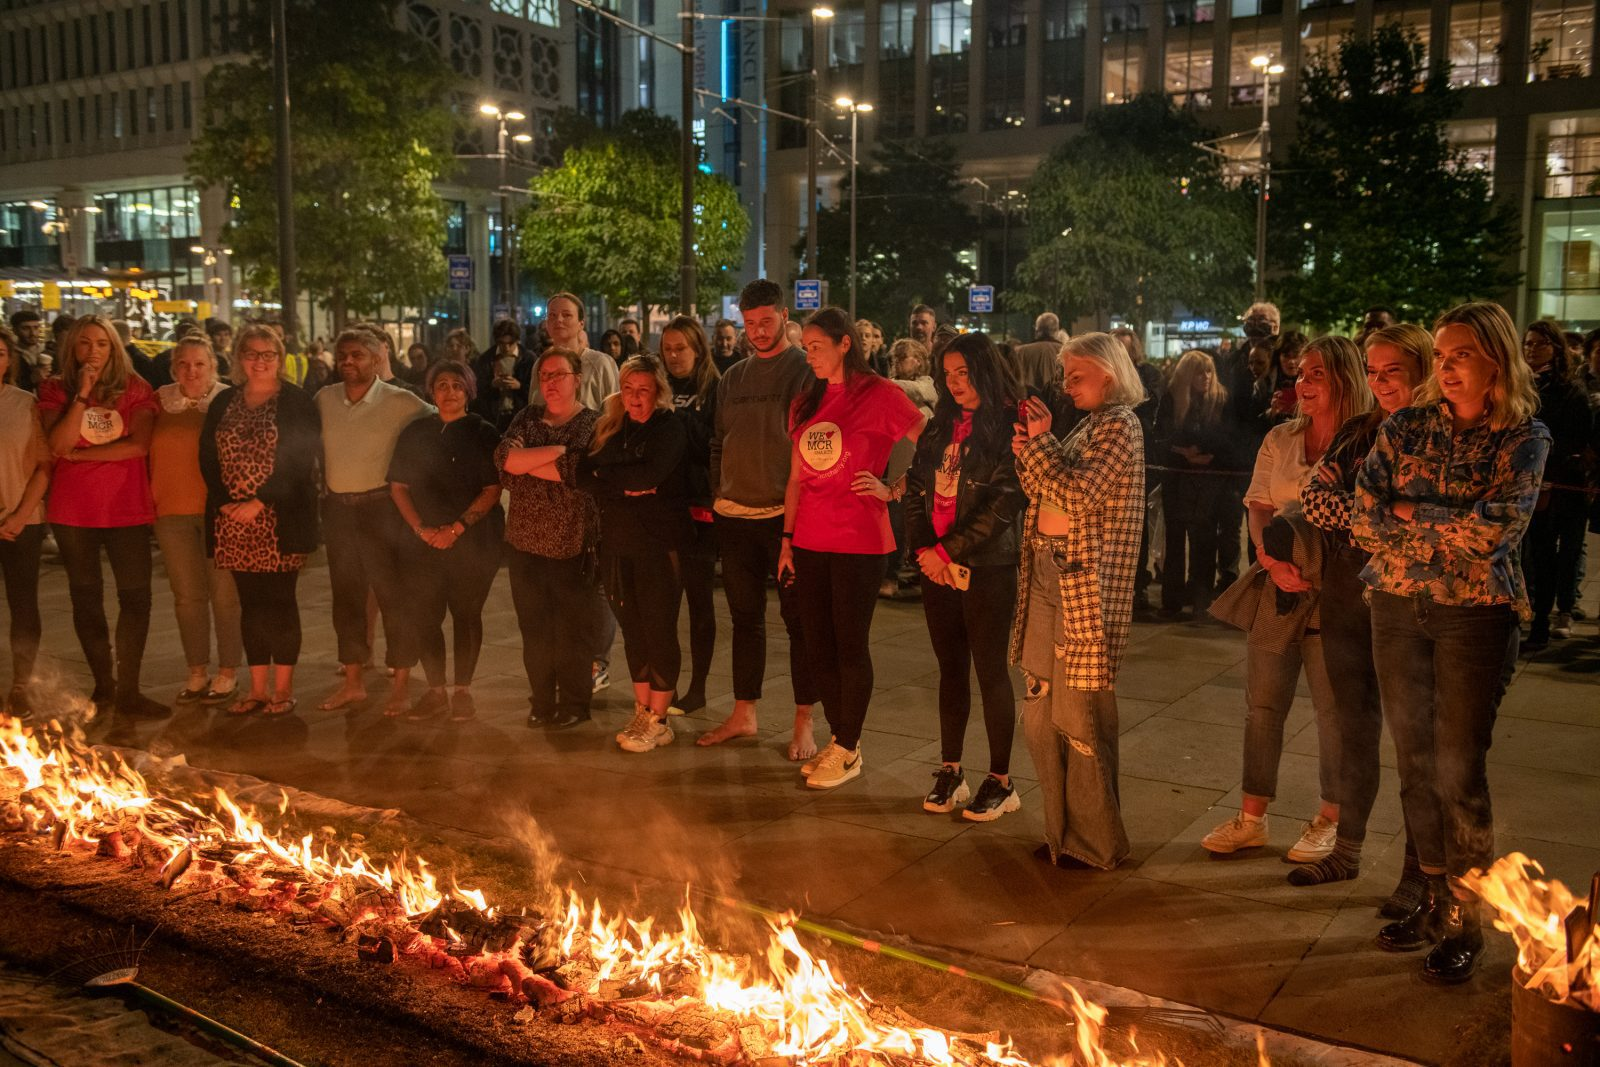 Here's what happened when 50 fundraisers walked on fire in St Peter's Square last night, The Manc